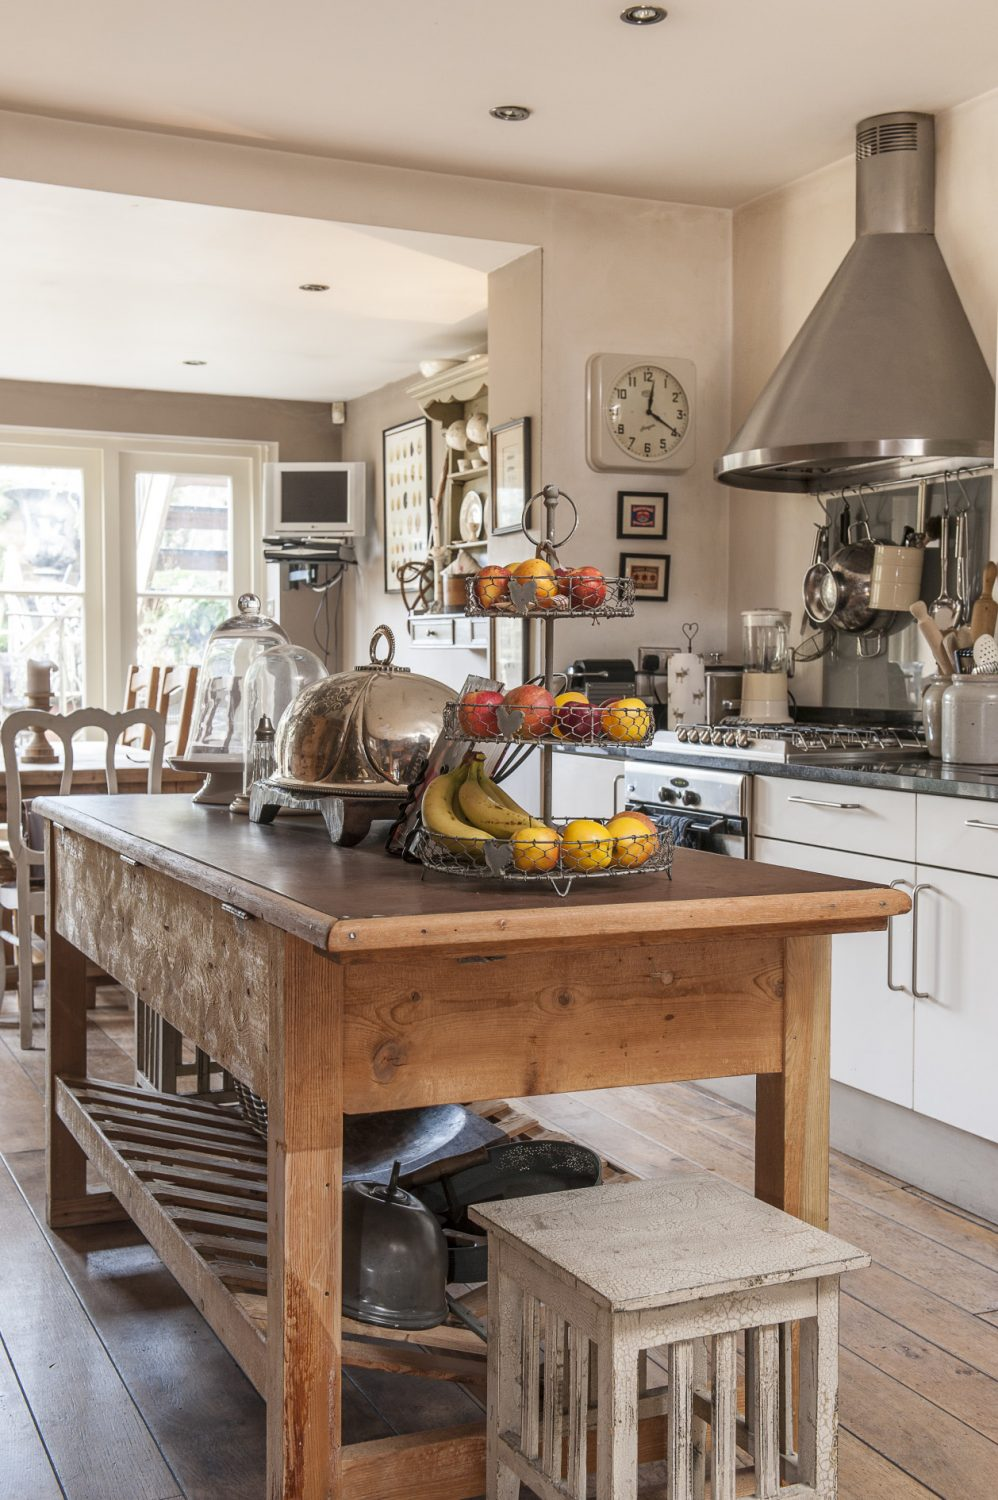 The kitchen section is divided invisibly down the middle – the business side all black granite and steel and the other a far warmer world of soft shades, shadows and antique wood